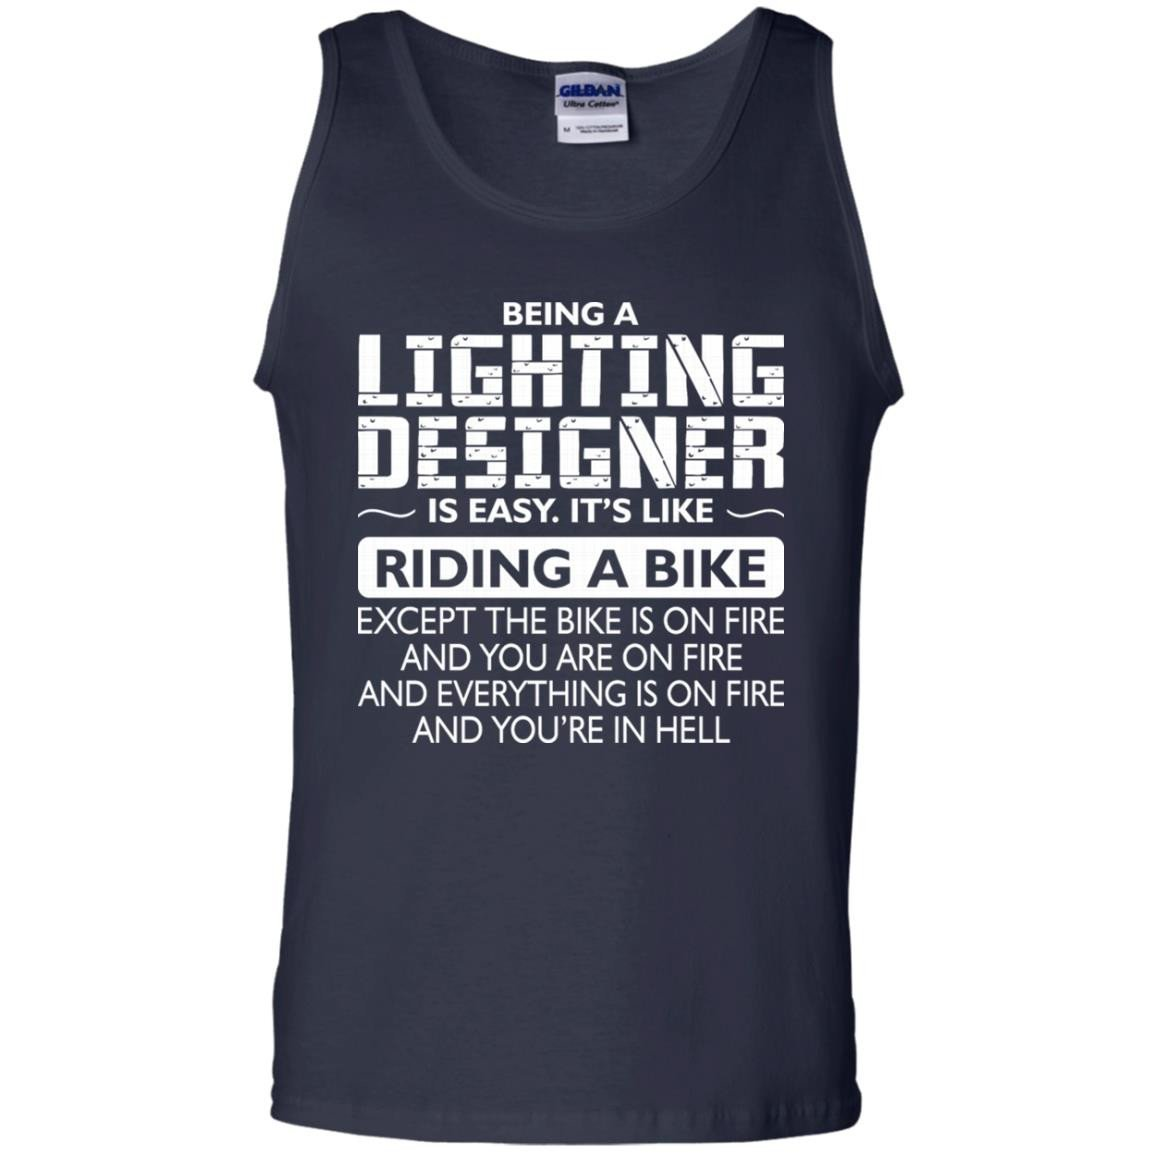 Being A Lighting Designer Like The Bike Is On Fire T Shirt Tank Top